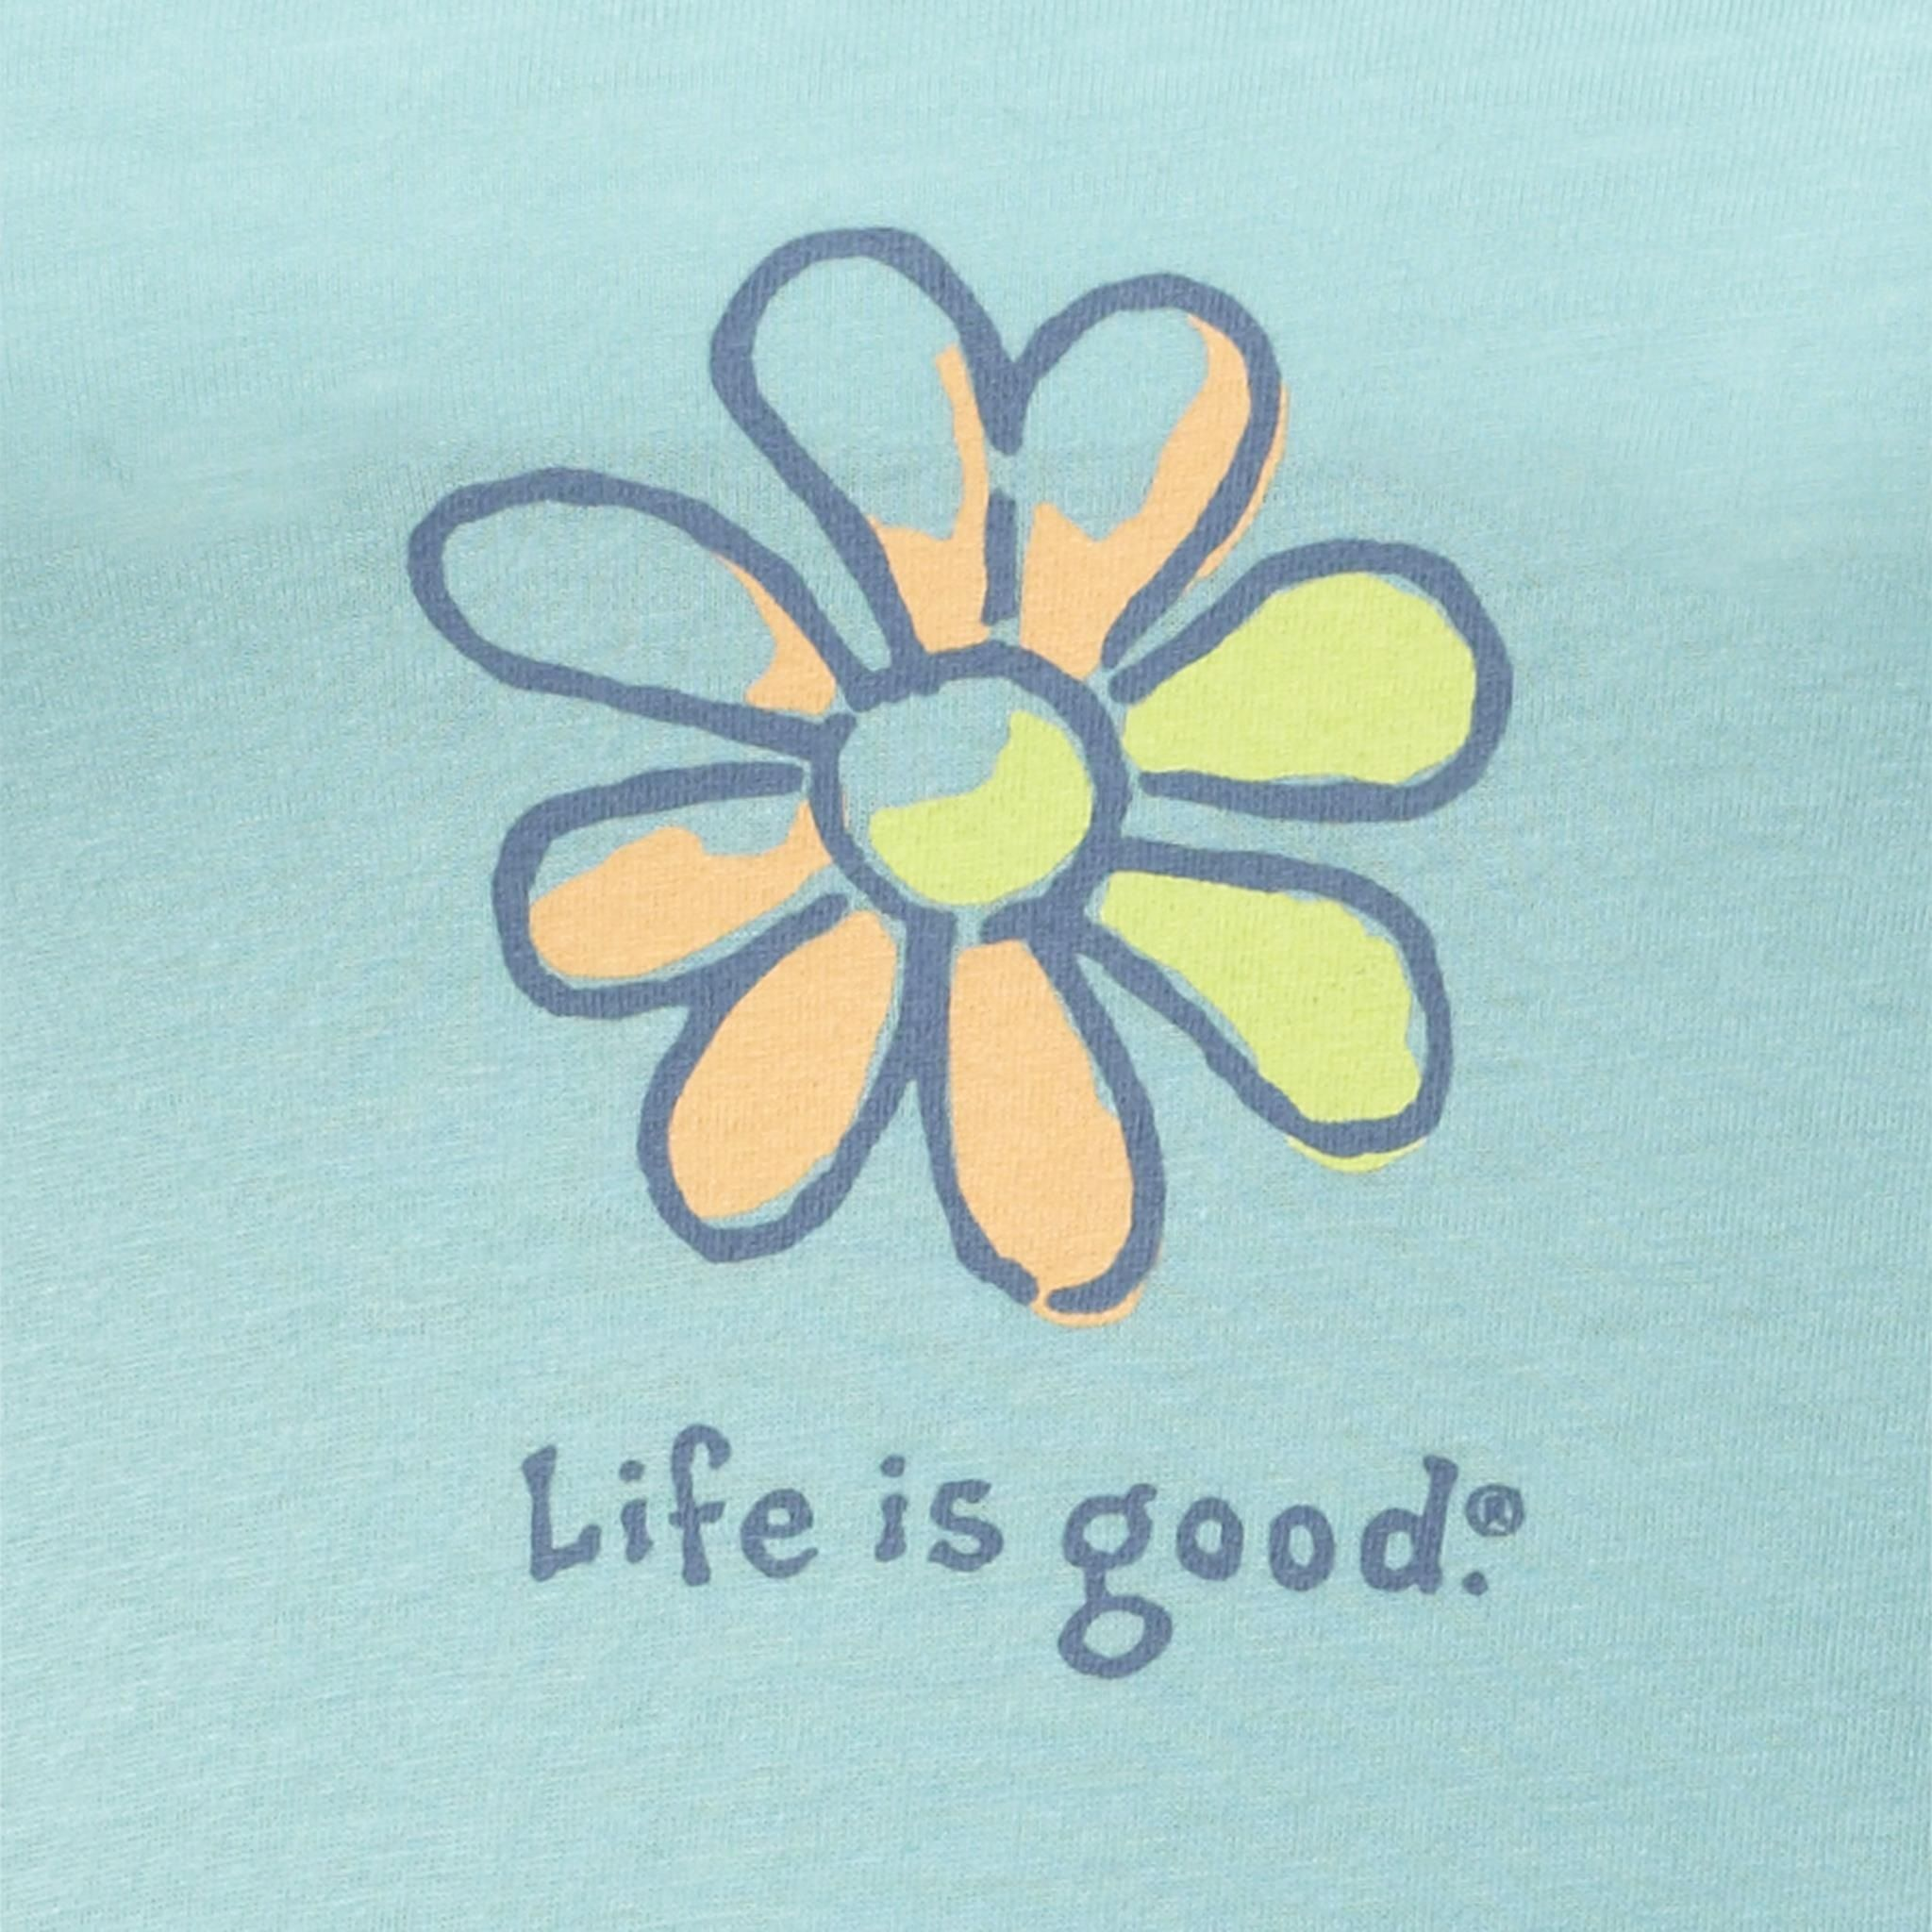 Stand Out Quotes, Life Is Good, Hippie